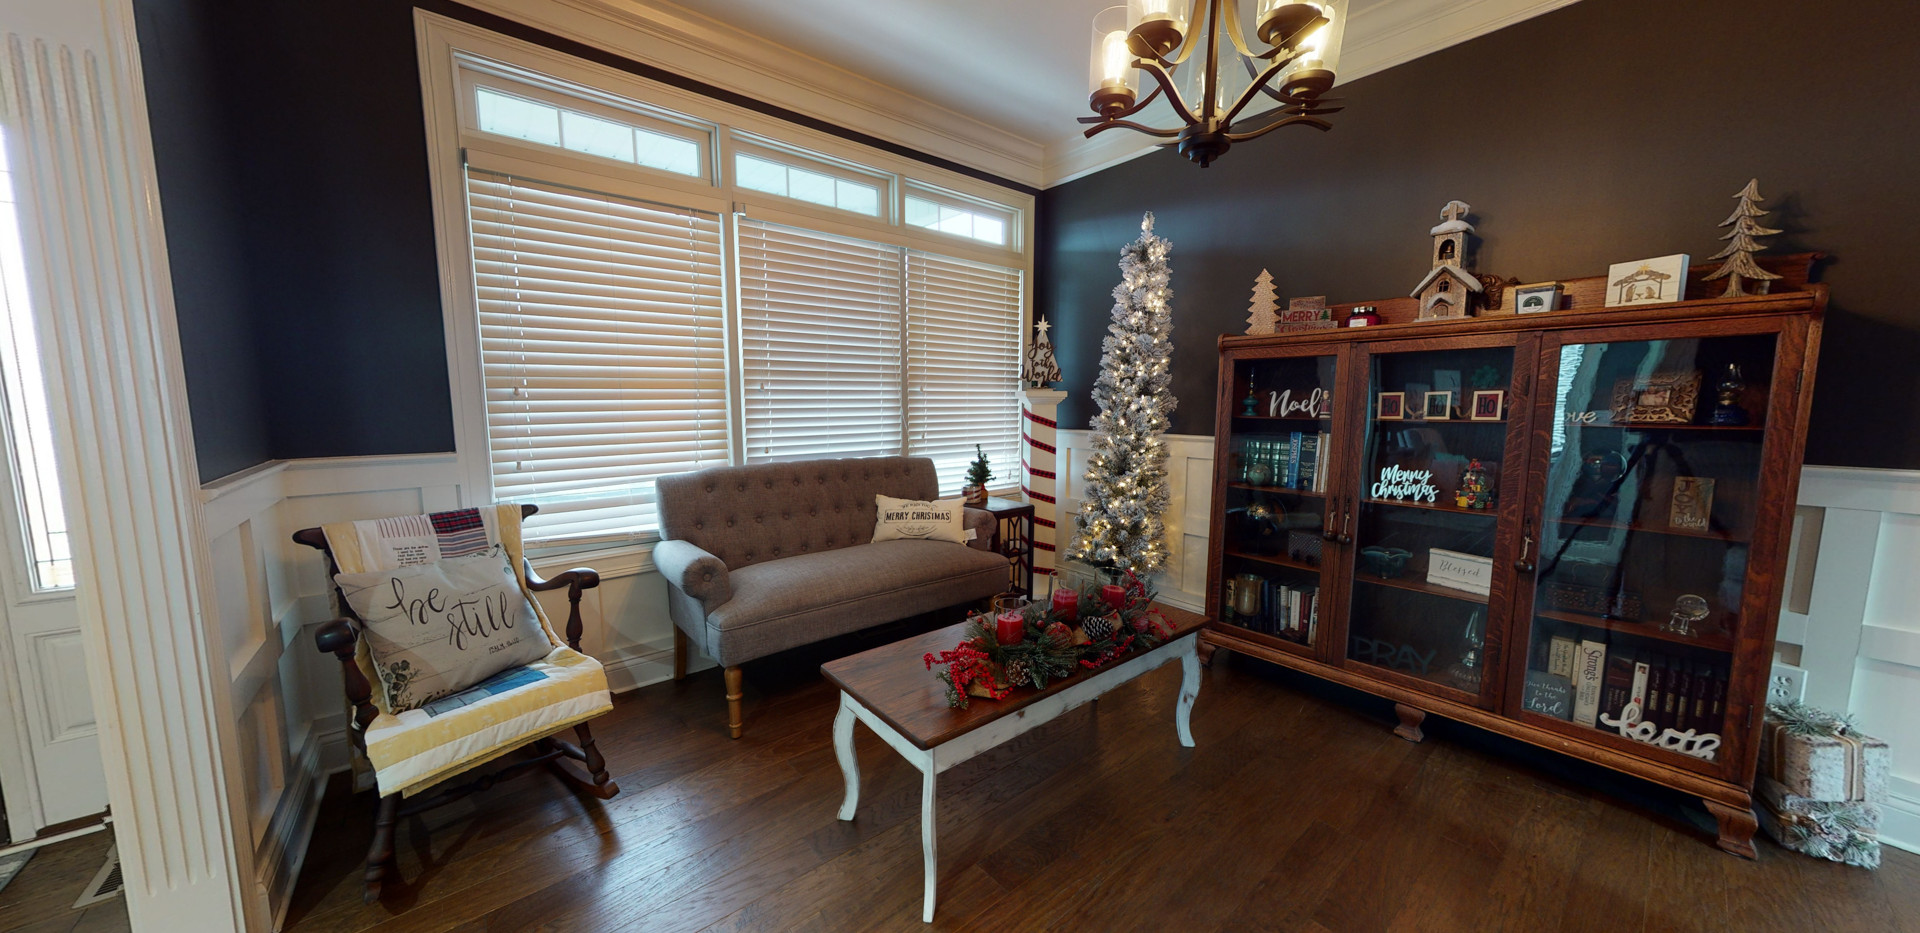 Cozy seating area with wooden half wall glass bookshelf and dark natural wood floors